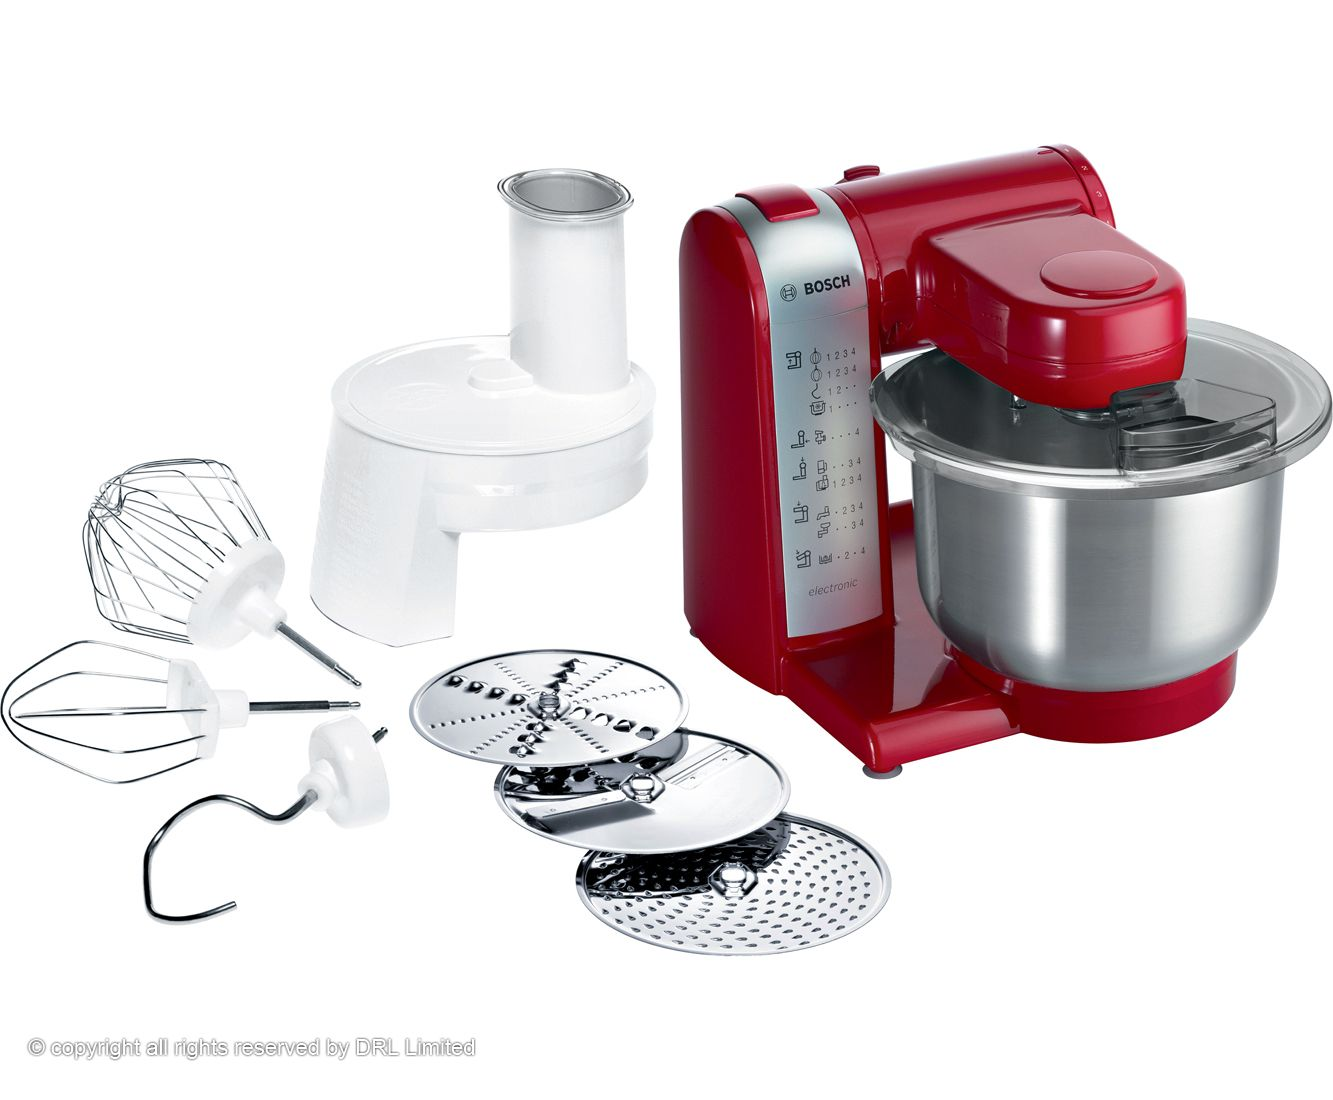 Bosch Kitchen Machine in Red Color | Wedding Gift Registry. Only the ...